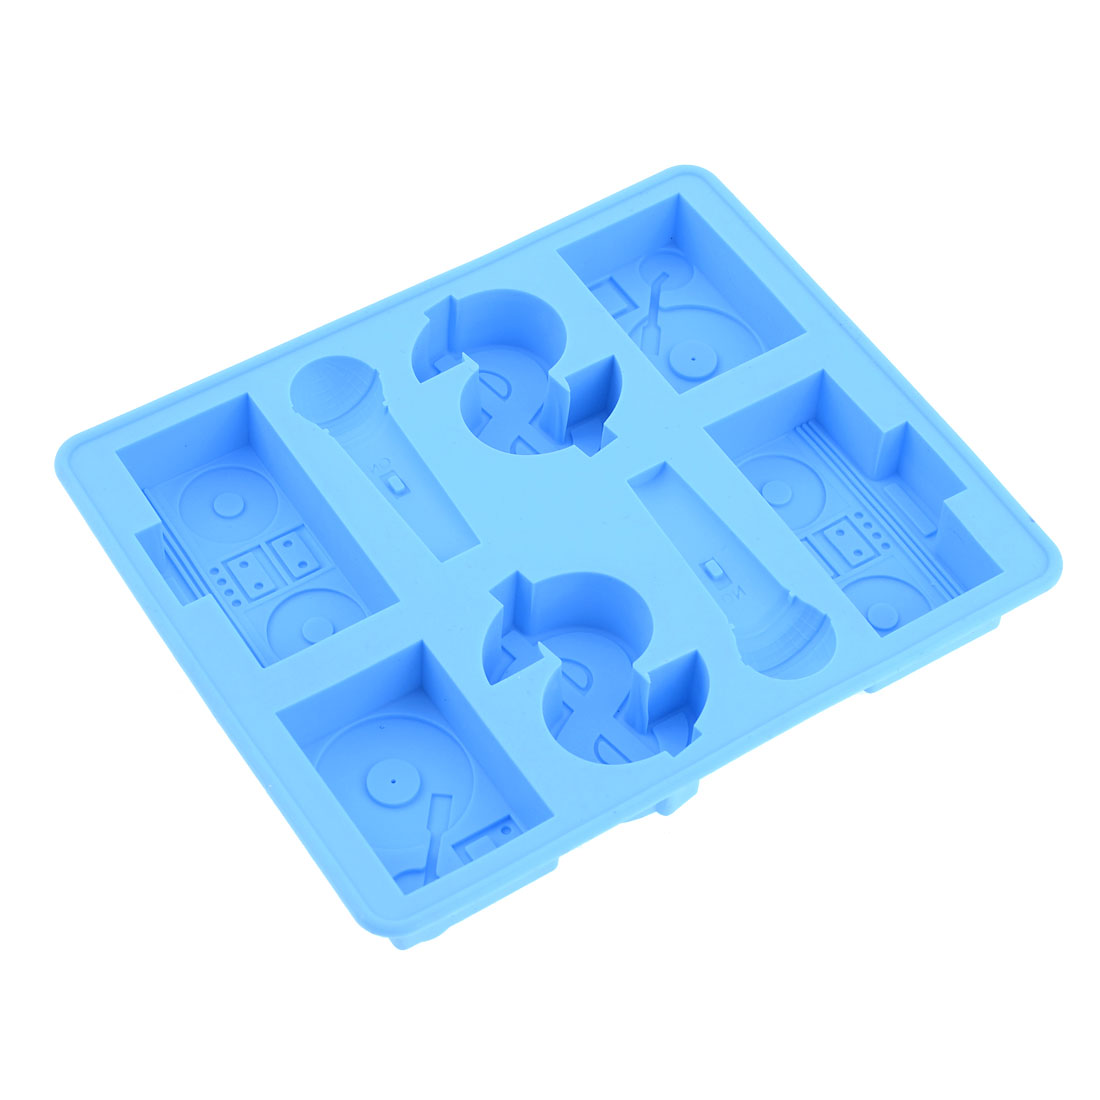 Cyan 8 Differnt Containers Rubber Dessert Ice Mold Maker Tray